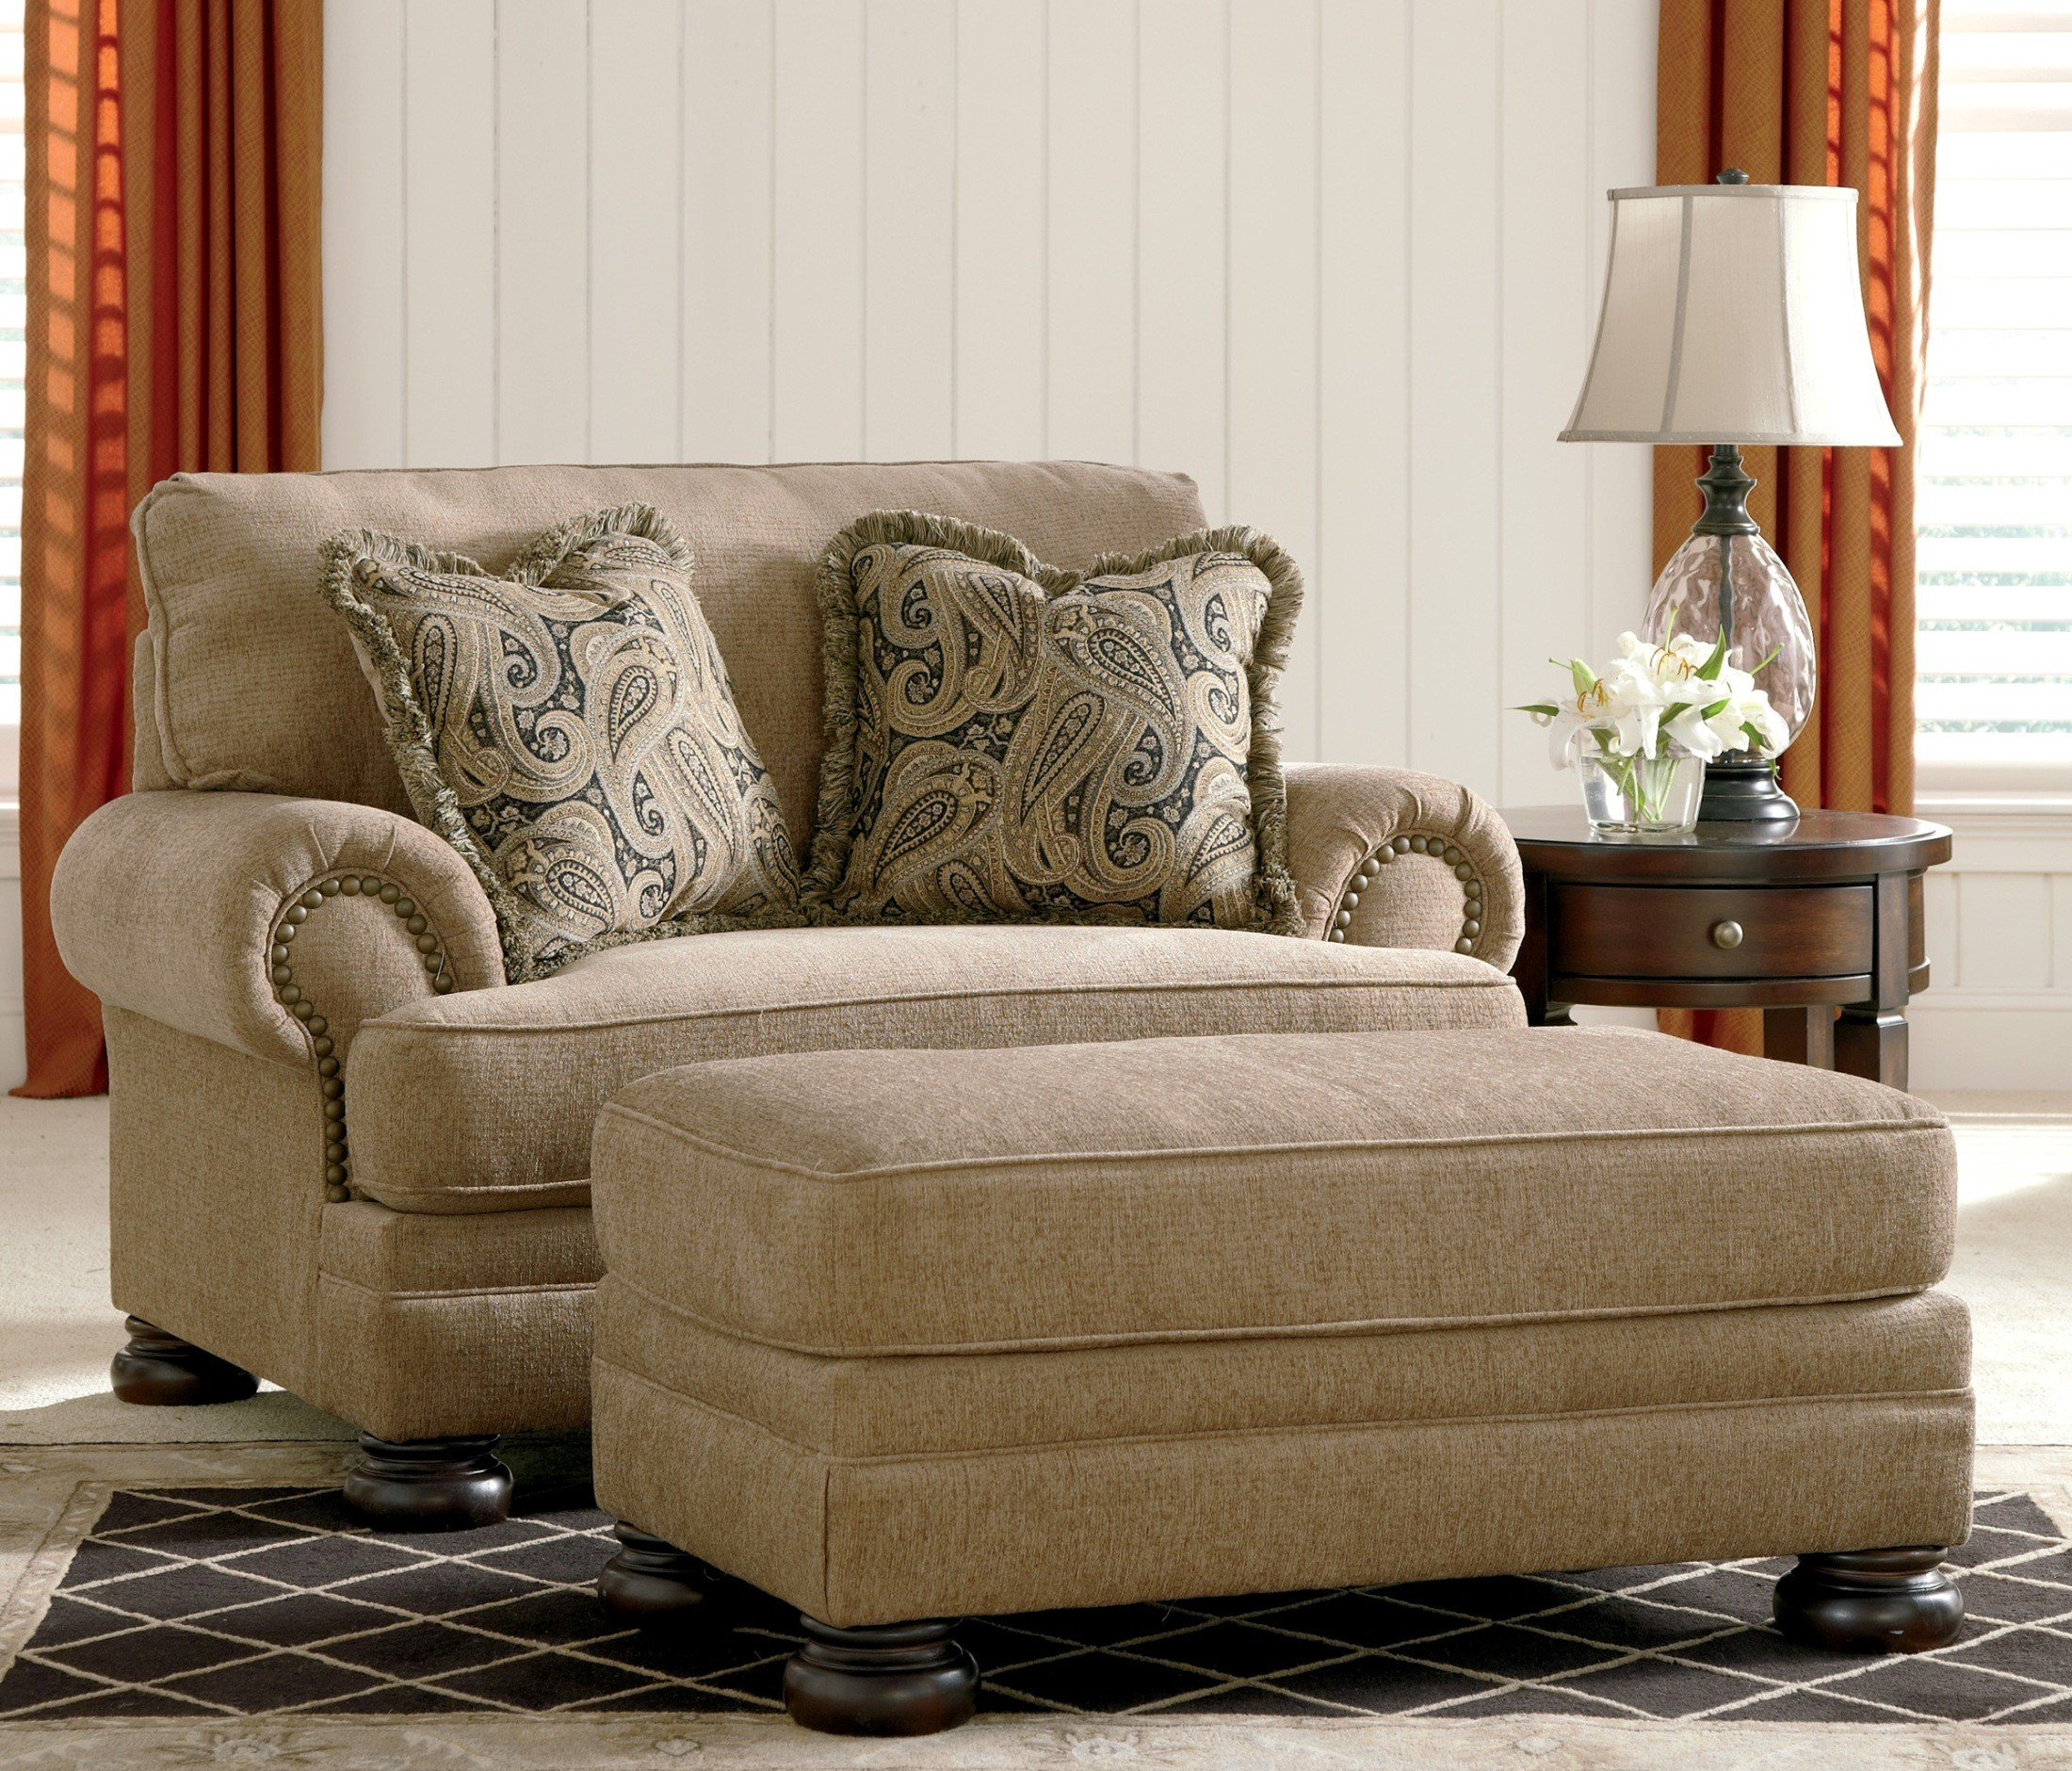 Keereel Sand Living Room Set from Ashley (38200) | Coleman Furniture